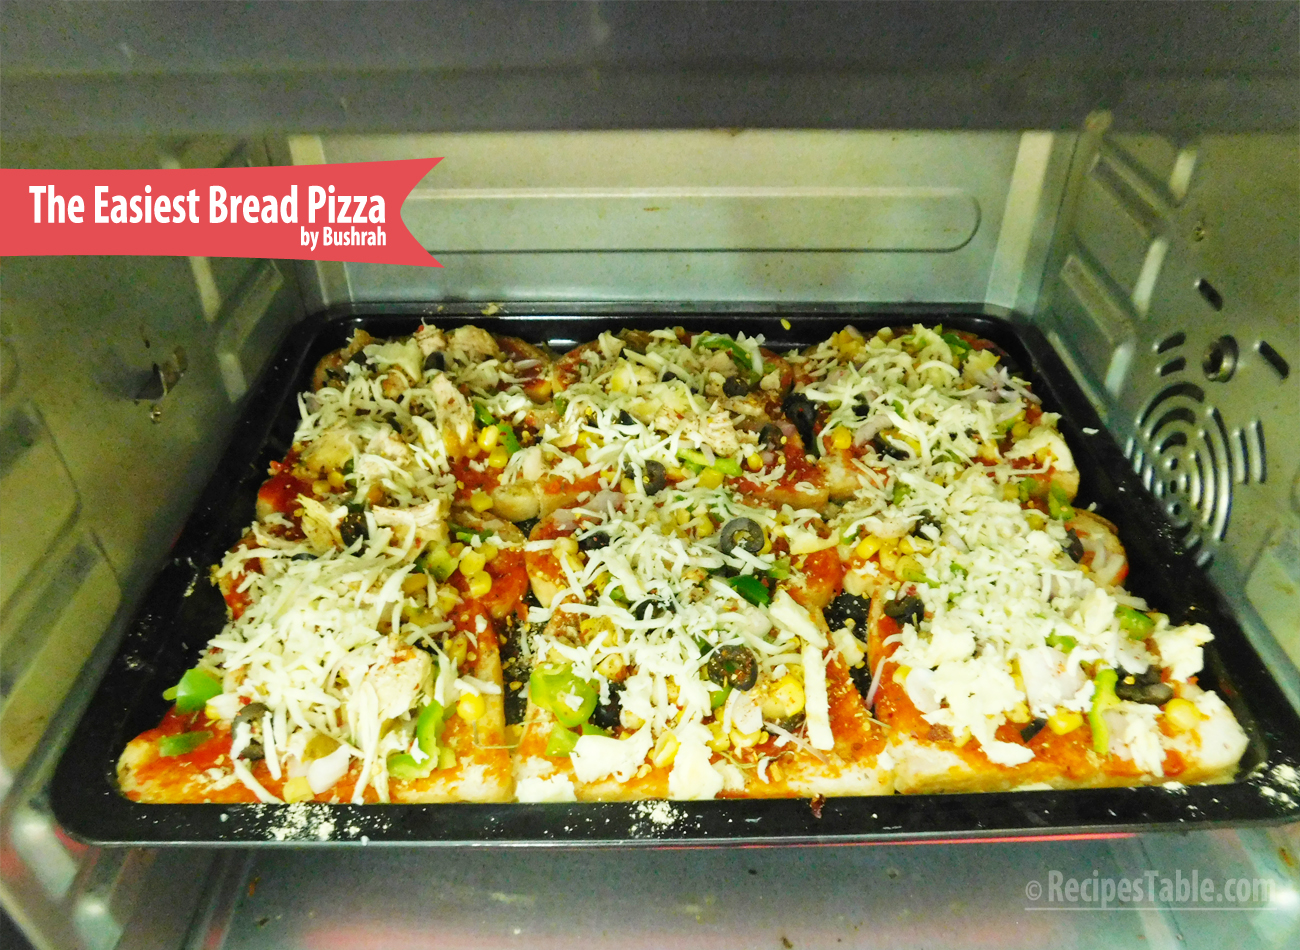 The Easiest Bread Pizza